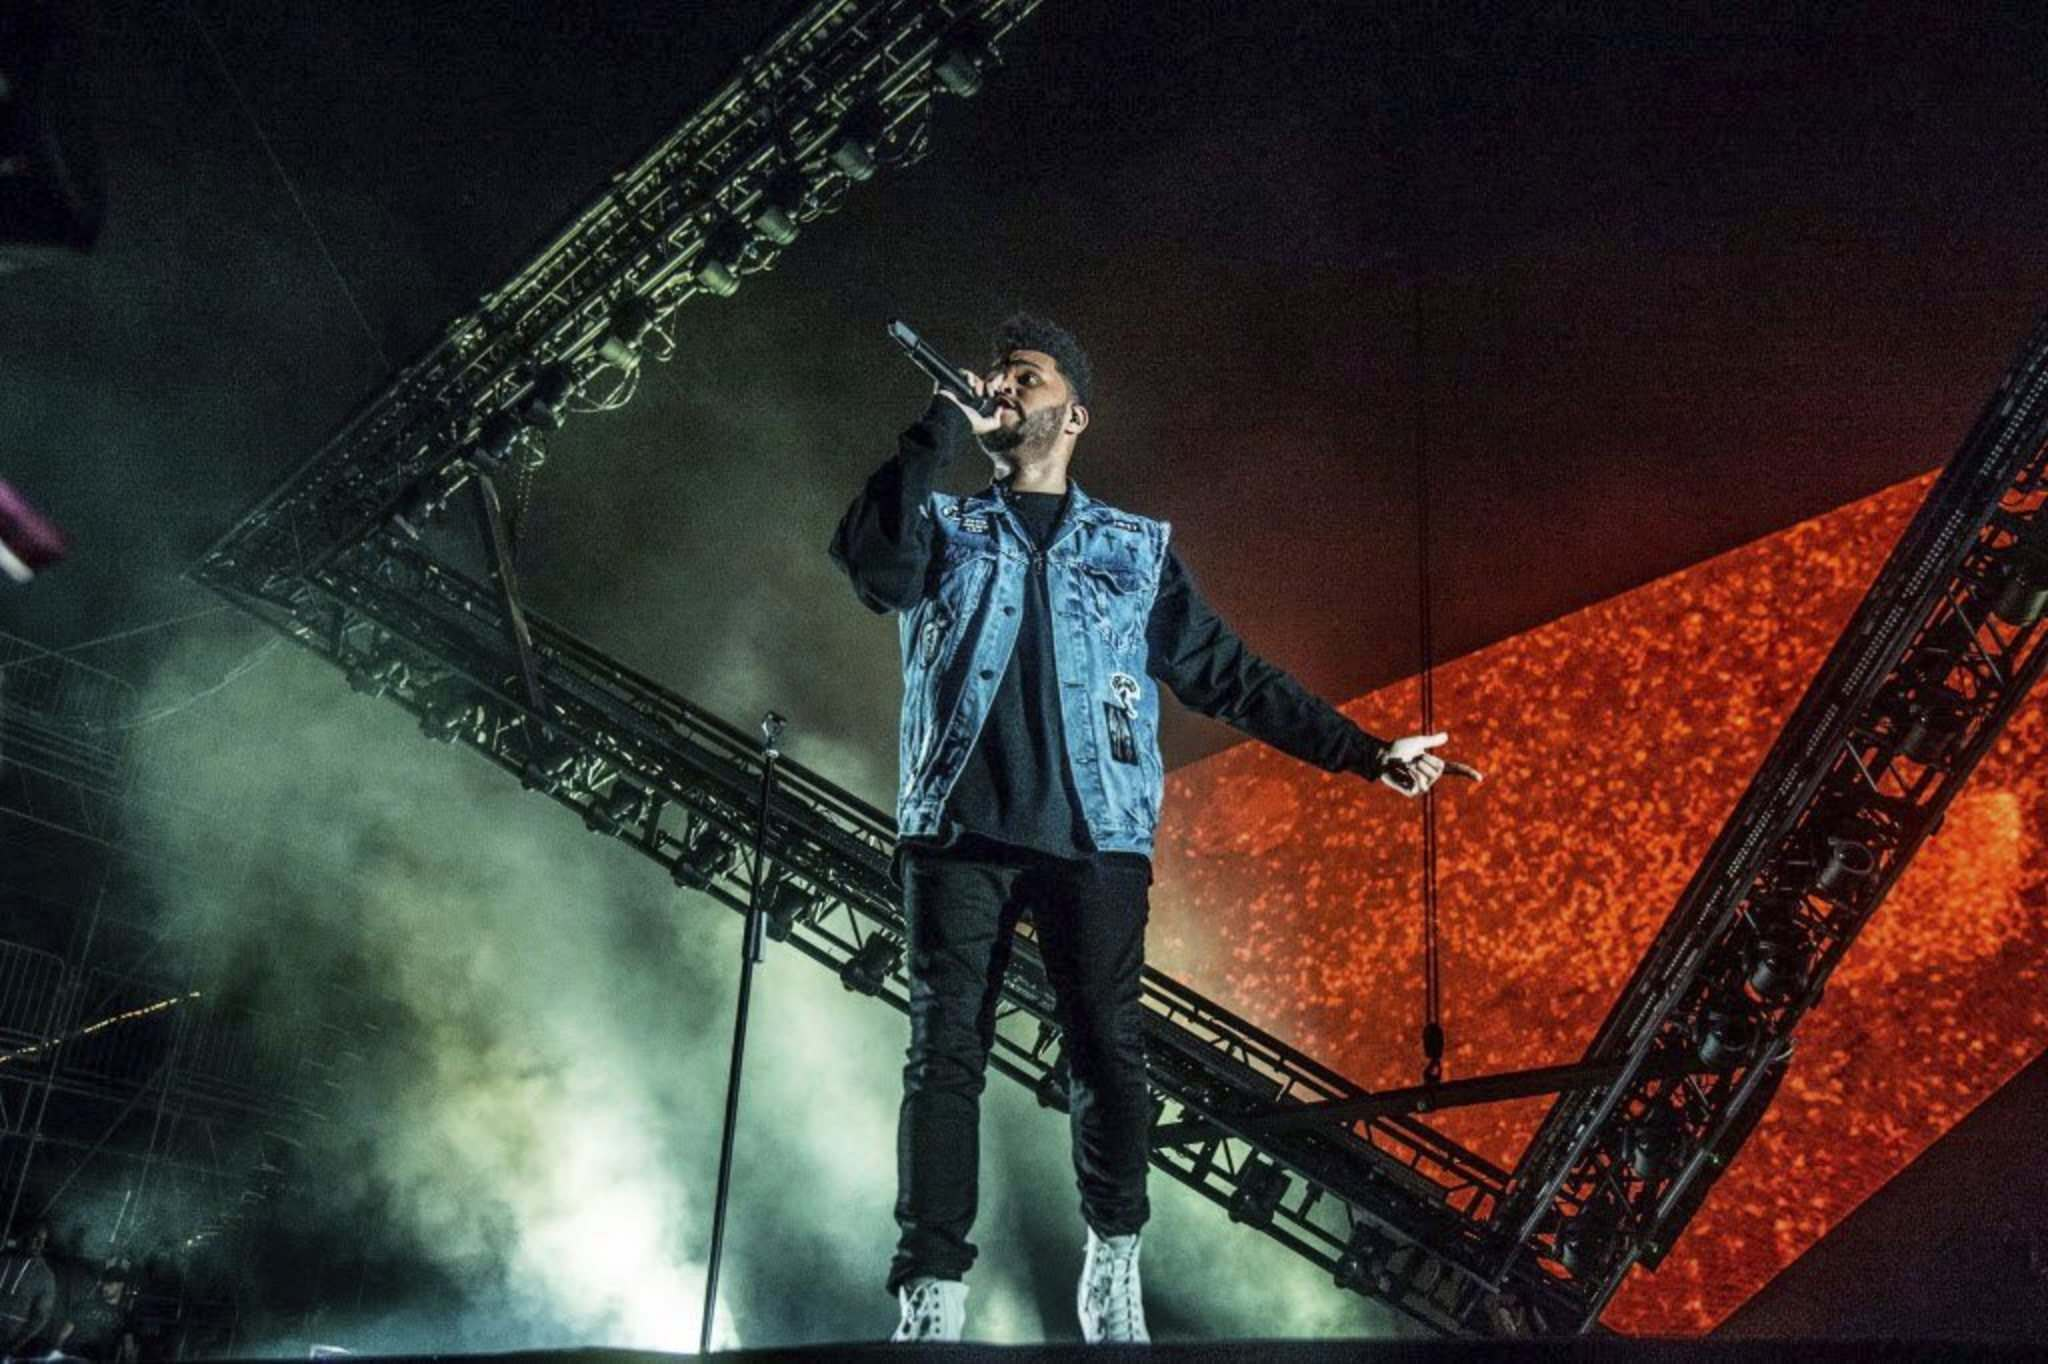 Amy Harris / Invision</p><p>The Weeknd performs at the Bonnaroo music festival in Tennessee on June 11. His success around the world shows CanCon regulations are not always necessary to create Canadian music stars.</p></p>